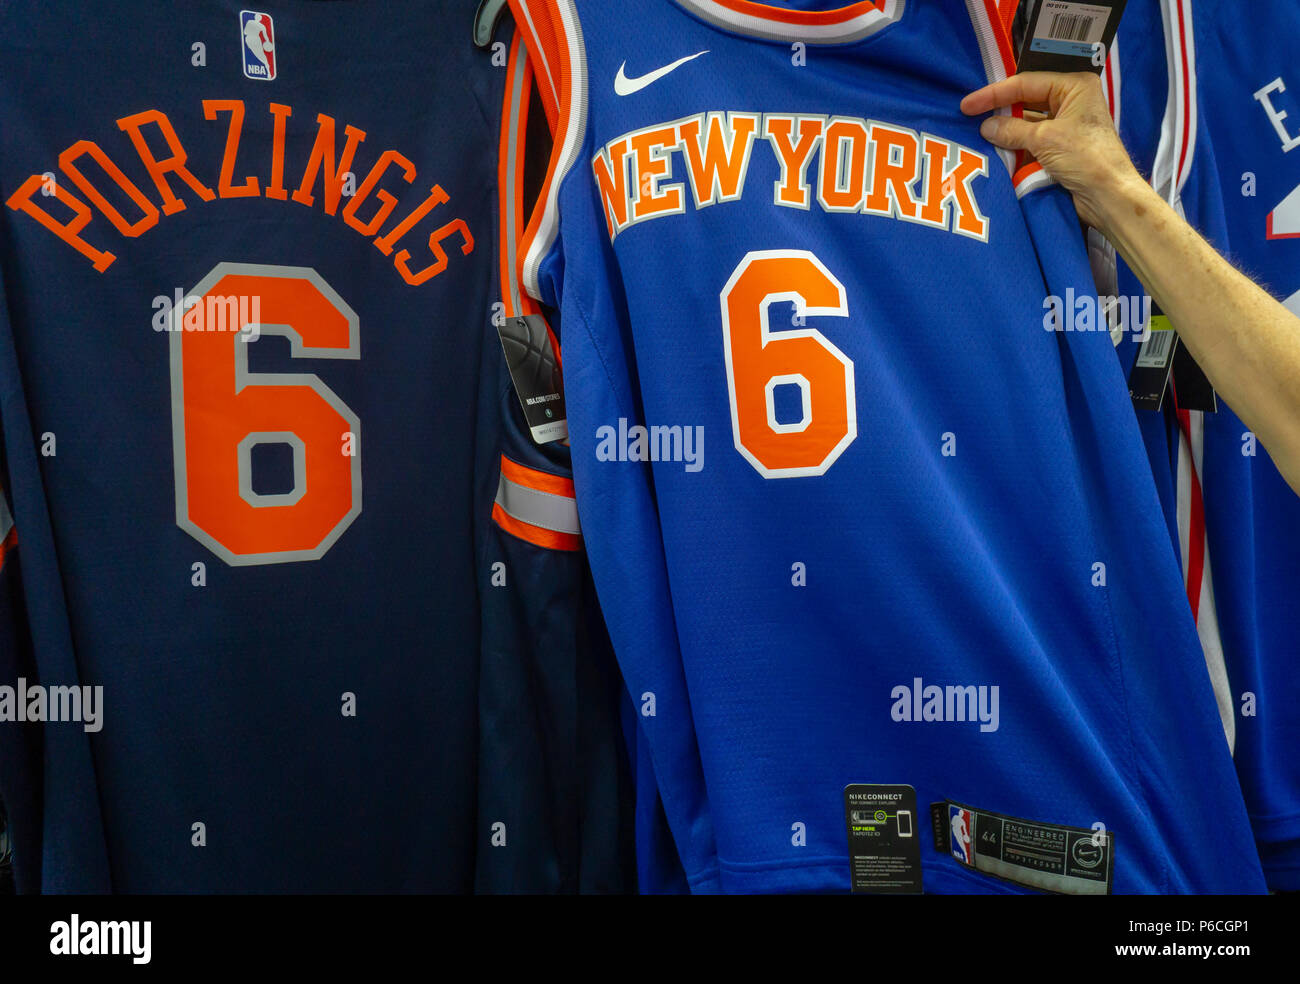 1a11259e7 New York Knicks basketball apparel in a sporting goods store in New York on  Thursday